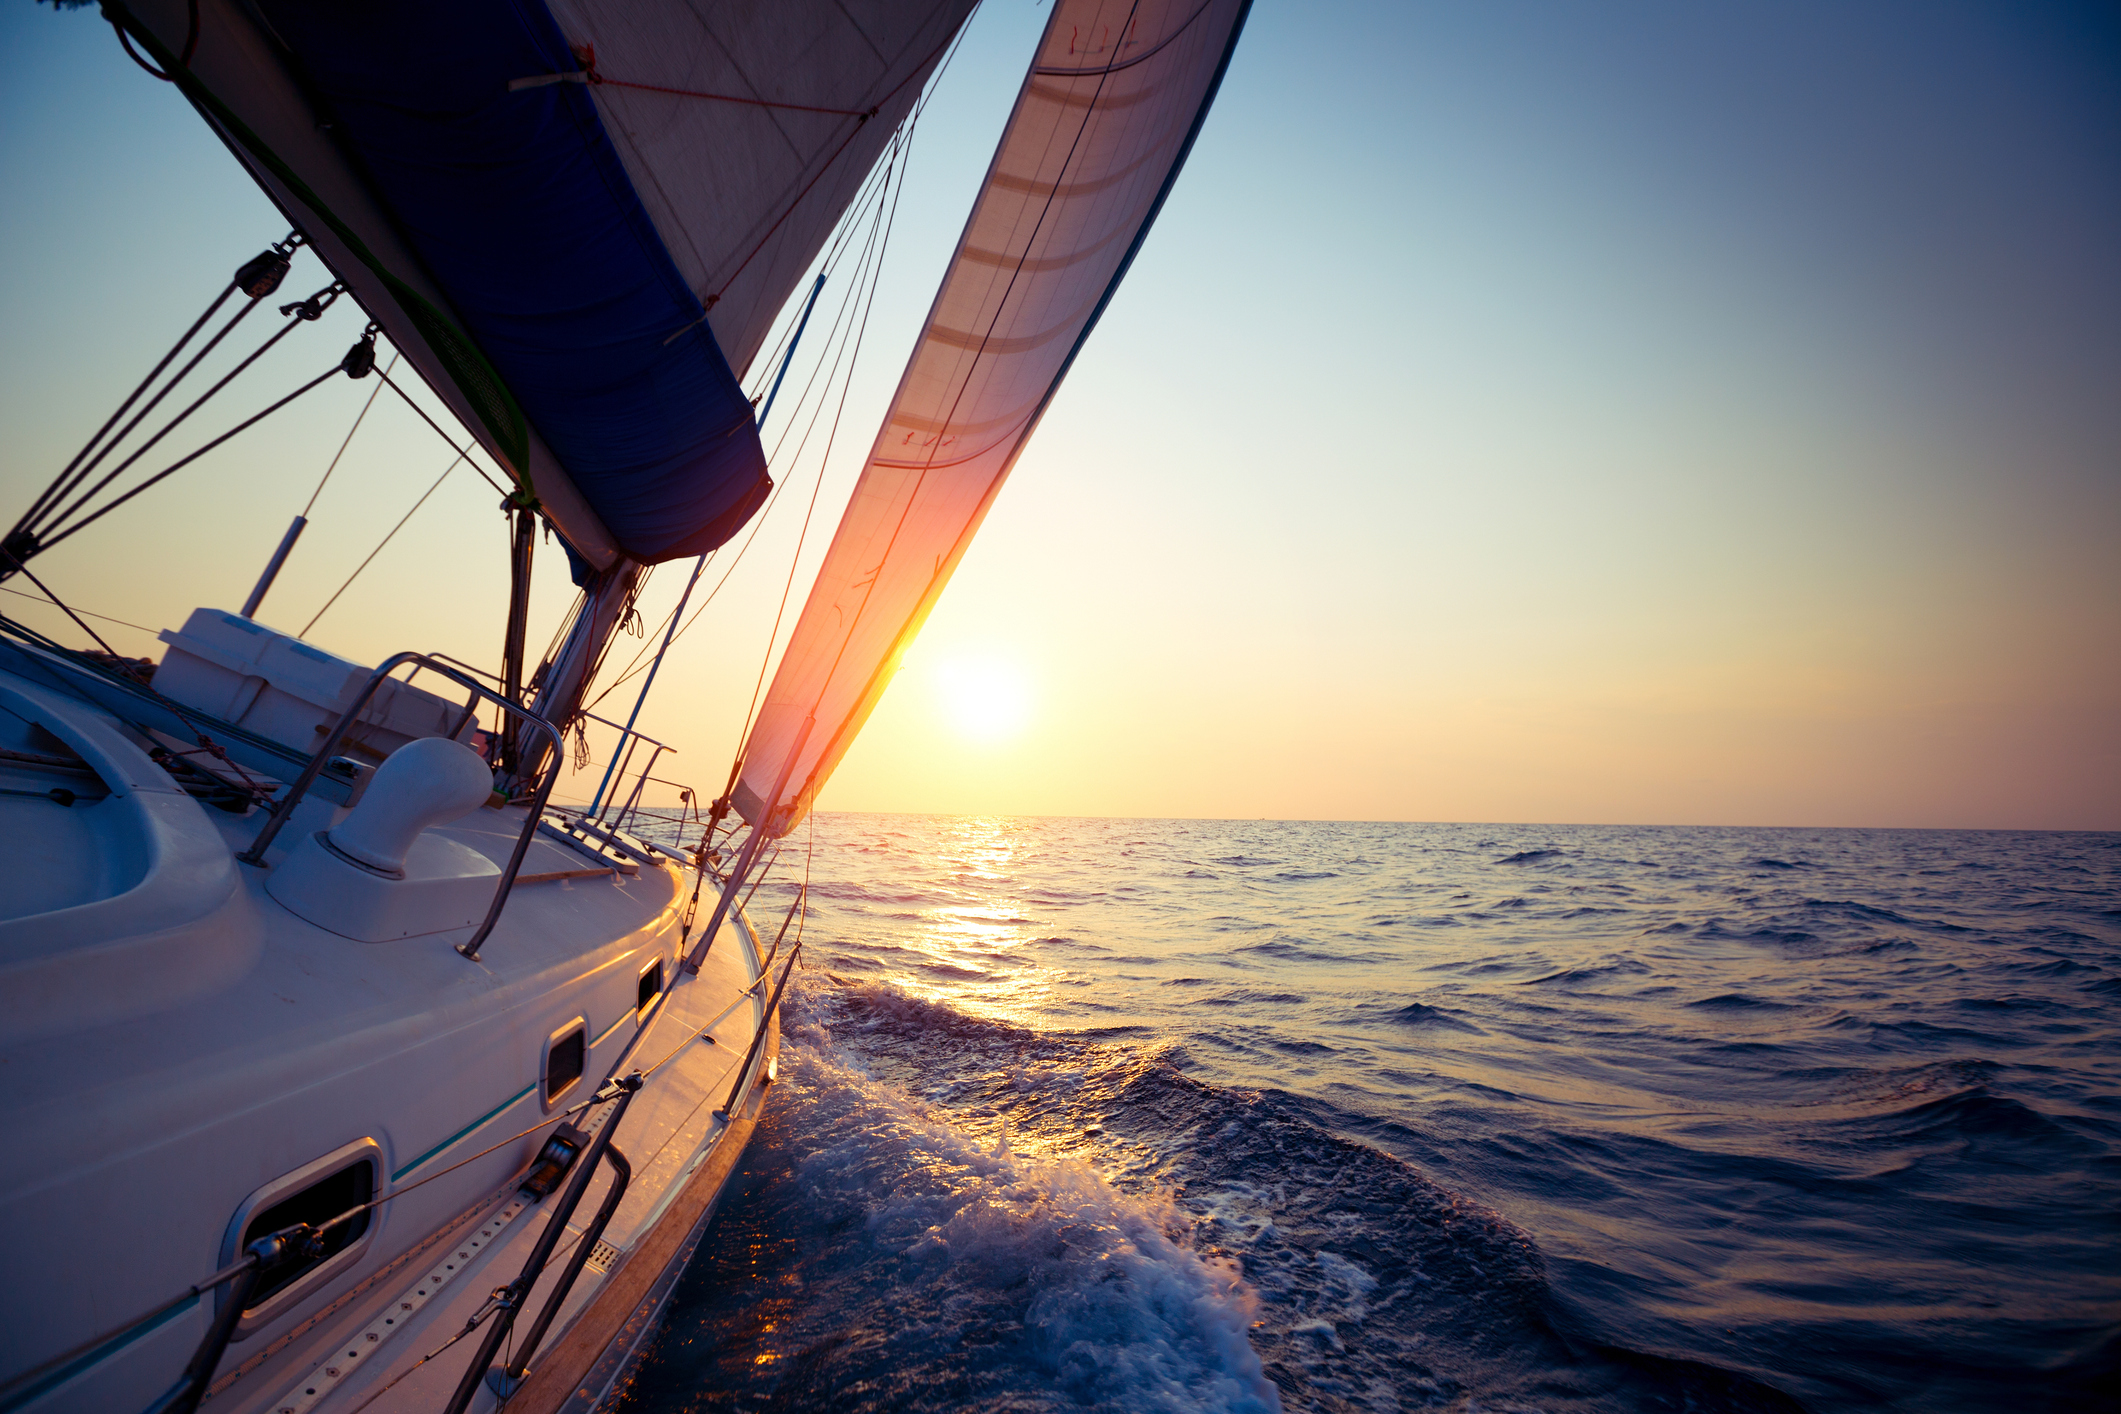 bOAT iNSURANCE - CLICK FOR A QUOTE